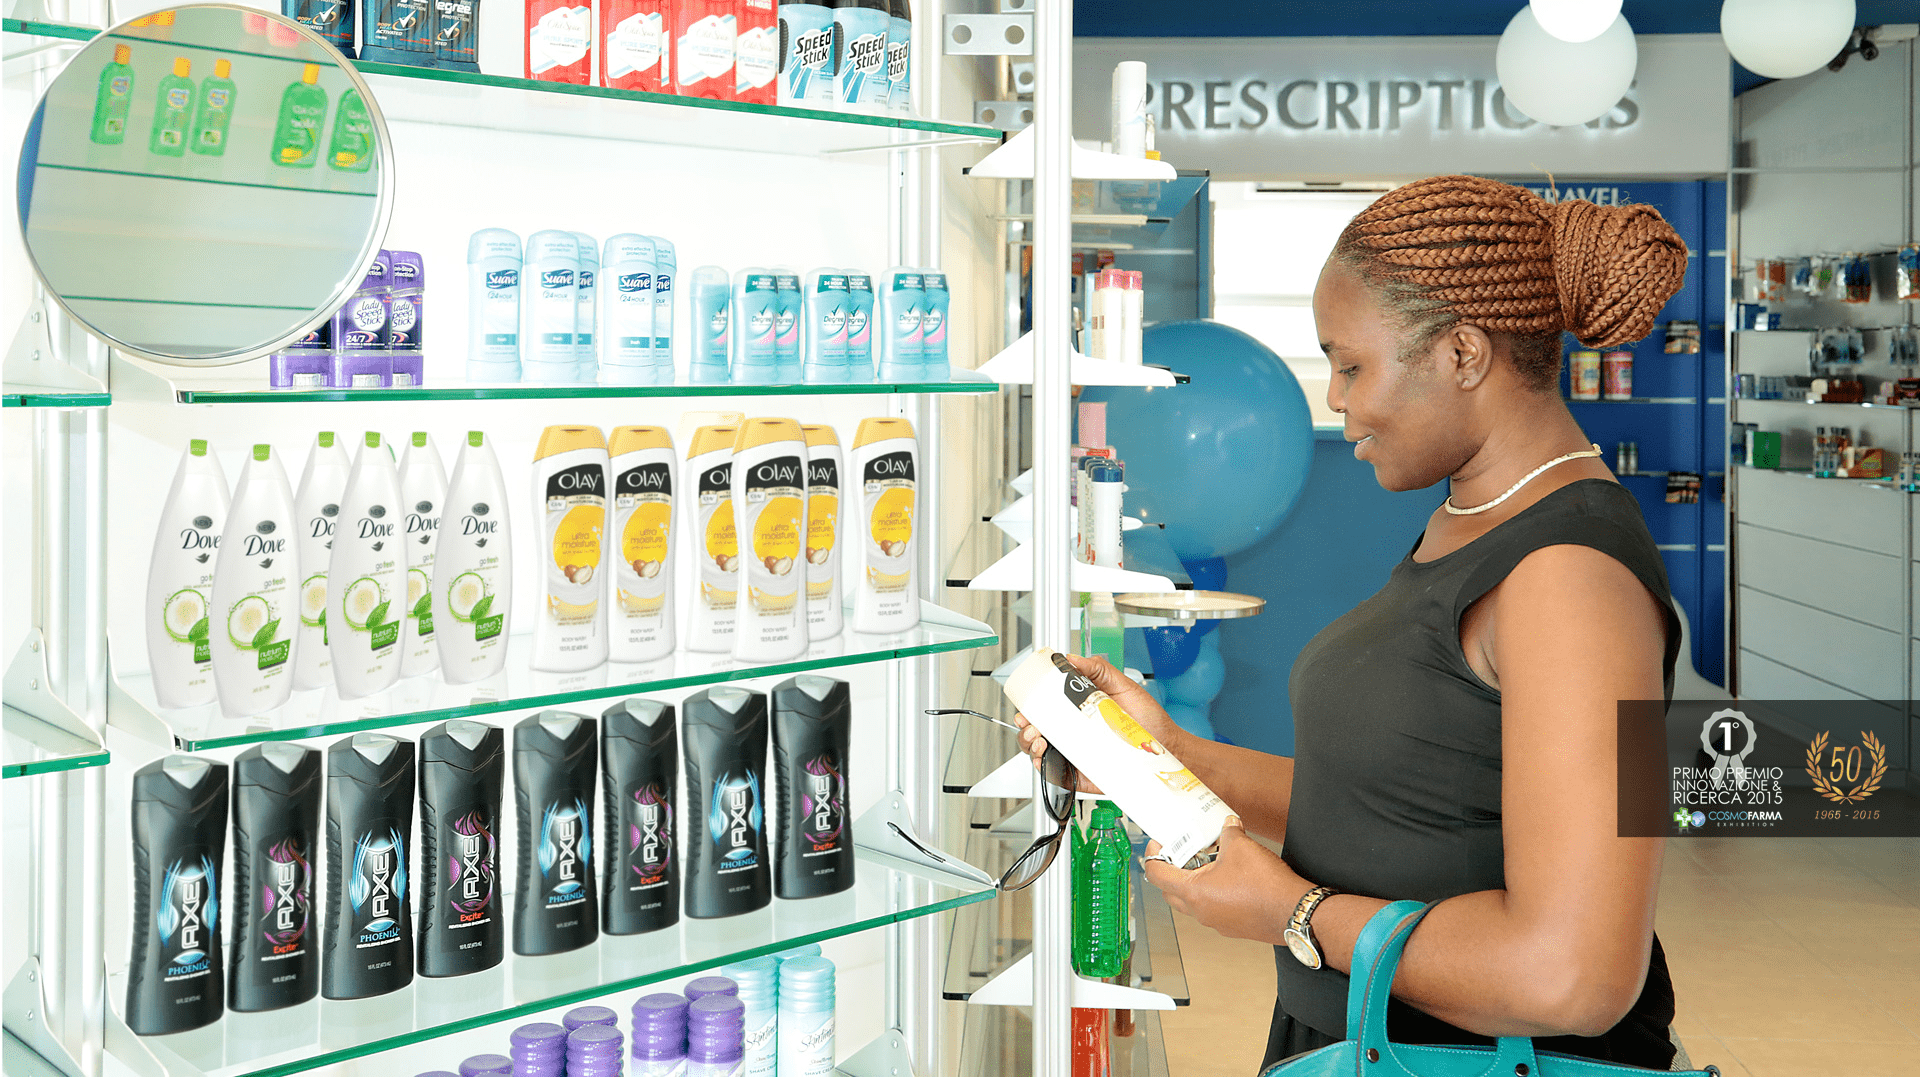 INCREASE AVERAGE TIME SPENT IN THE PHARMACY